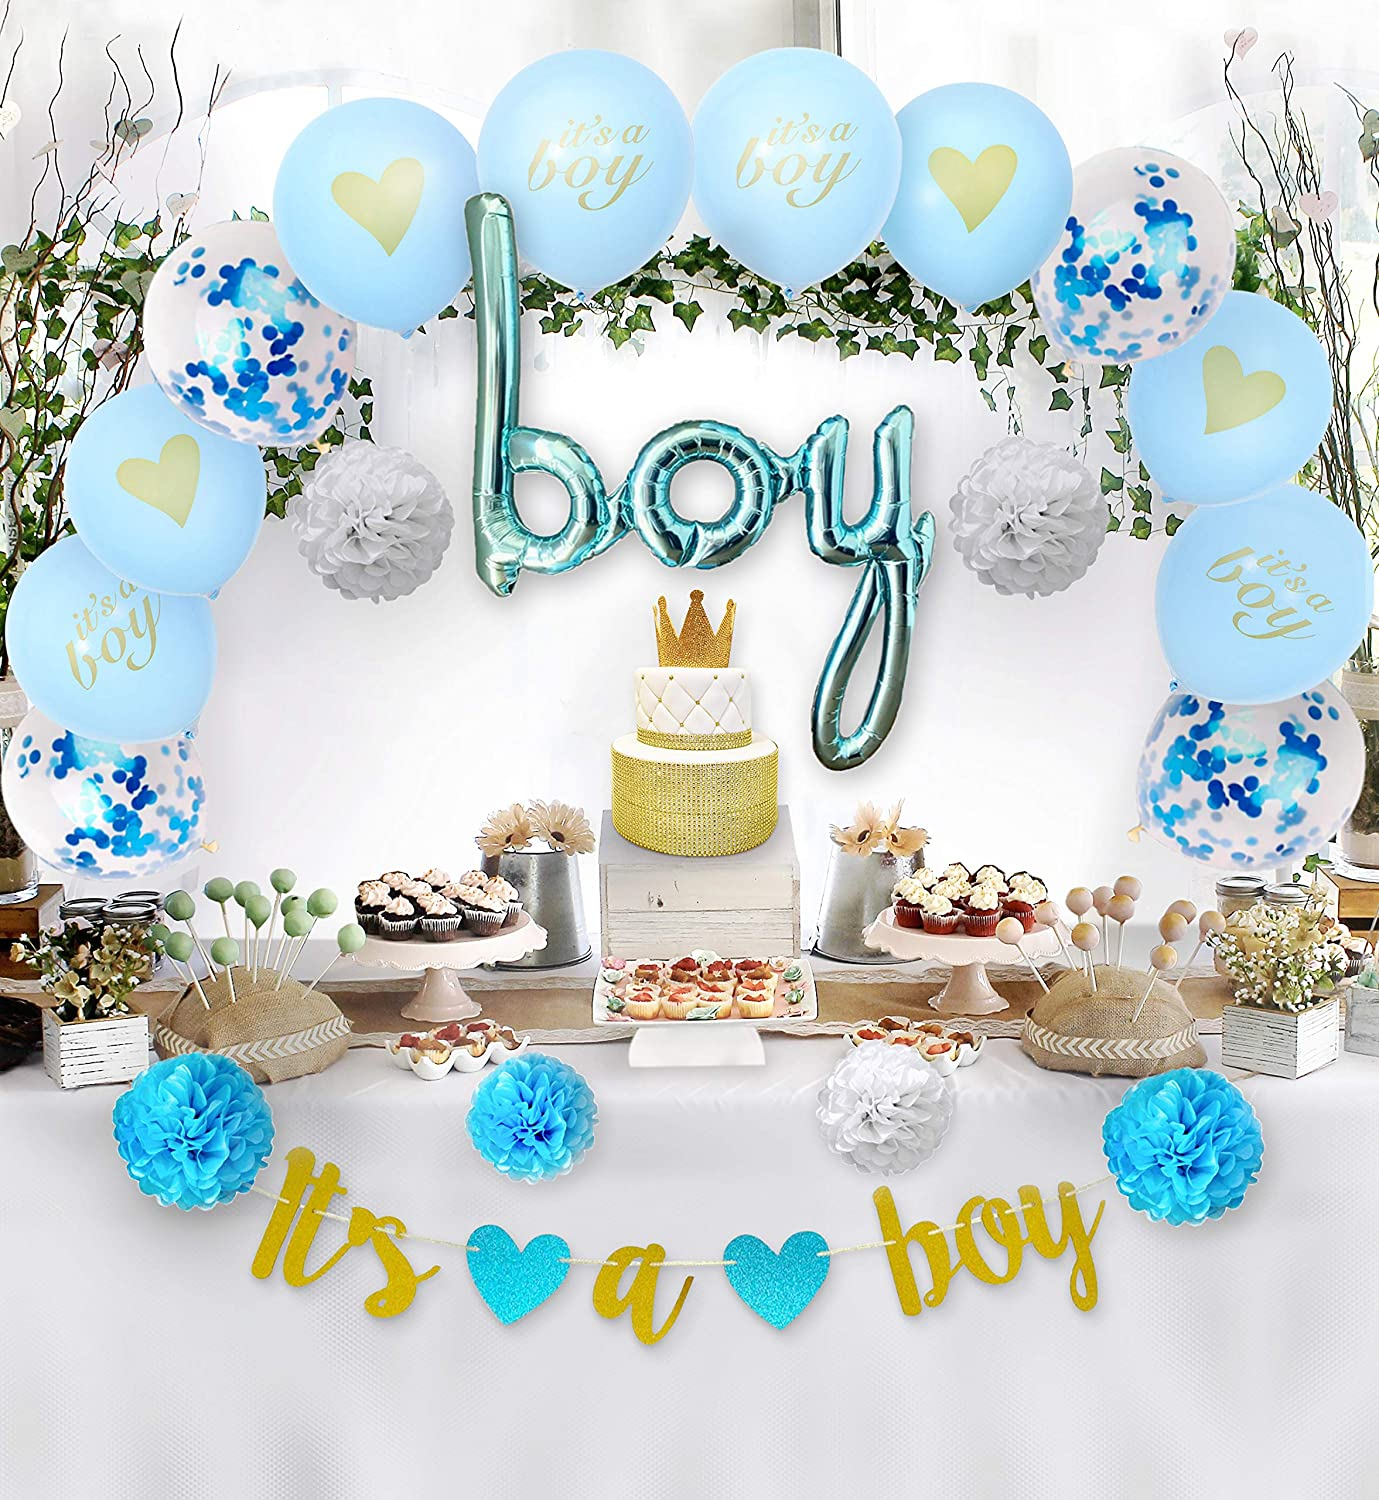 Baby Shower Decorations Boy Gender Kit, Welcome your baby boy with this party decor including a Gold Banner, Script Balloon, Paper Flowers Pom Poms, Confetti Balloons and It's a Boy & Heart Balloons